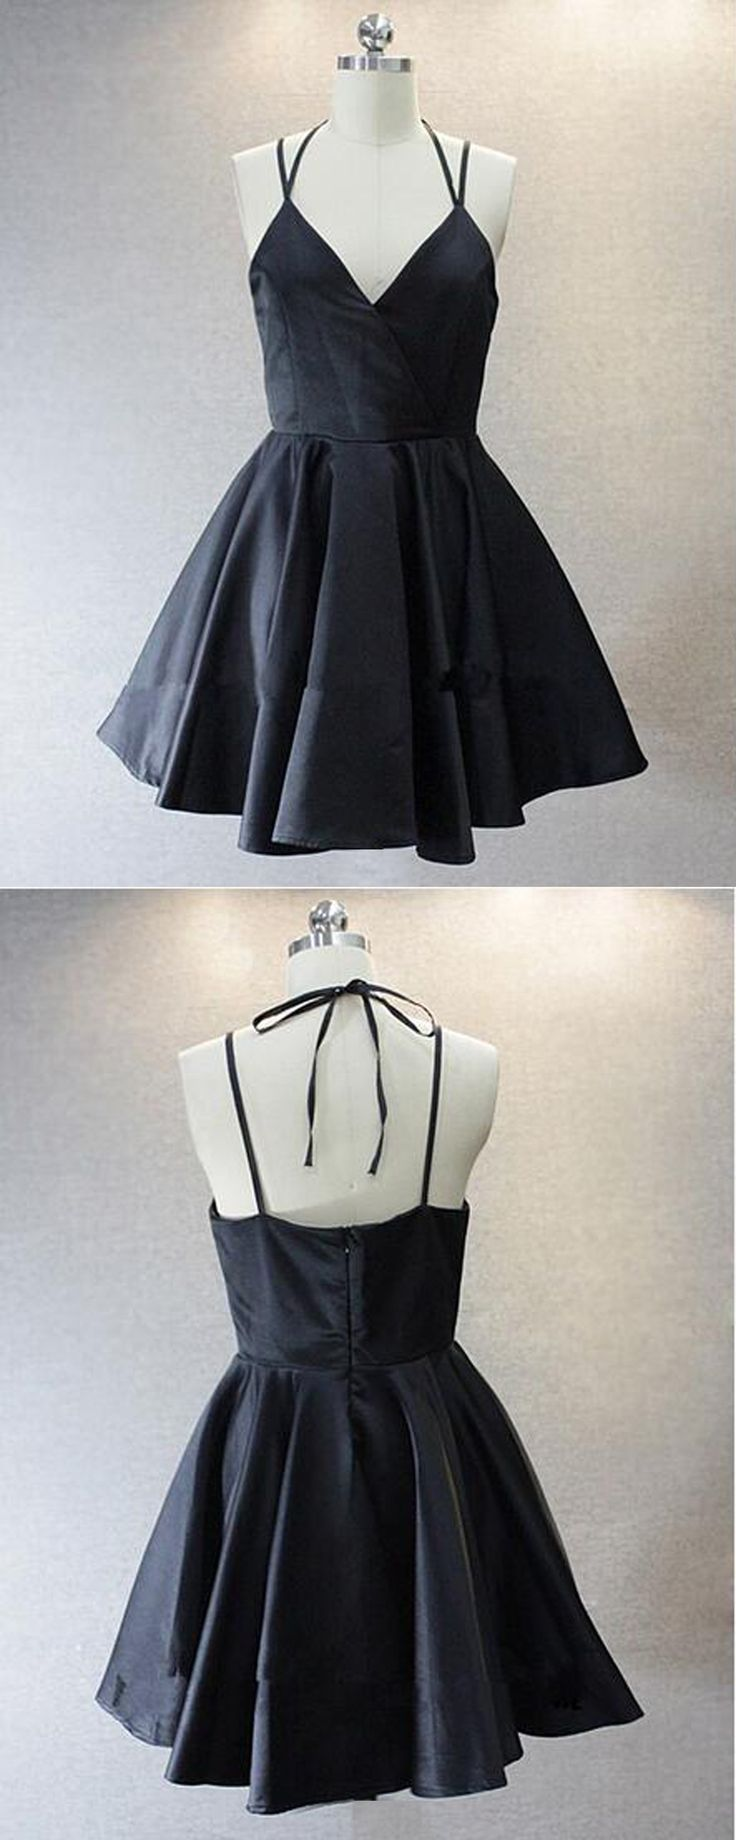 simple black homecoming dresses, multi-strap short prom dresses, satin v-neck party dresses